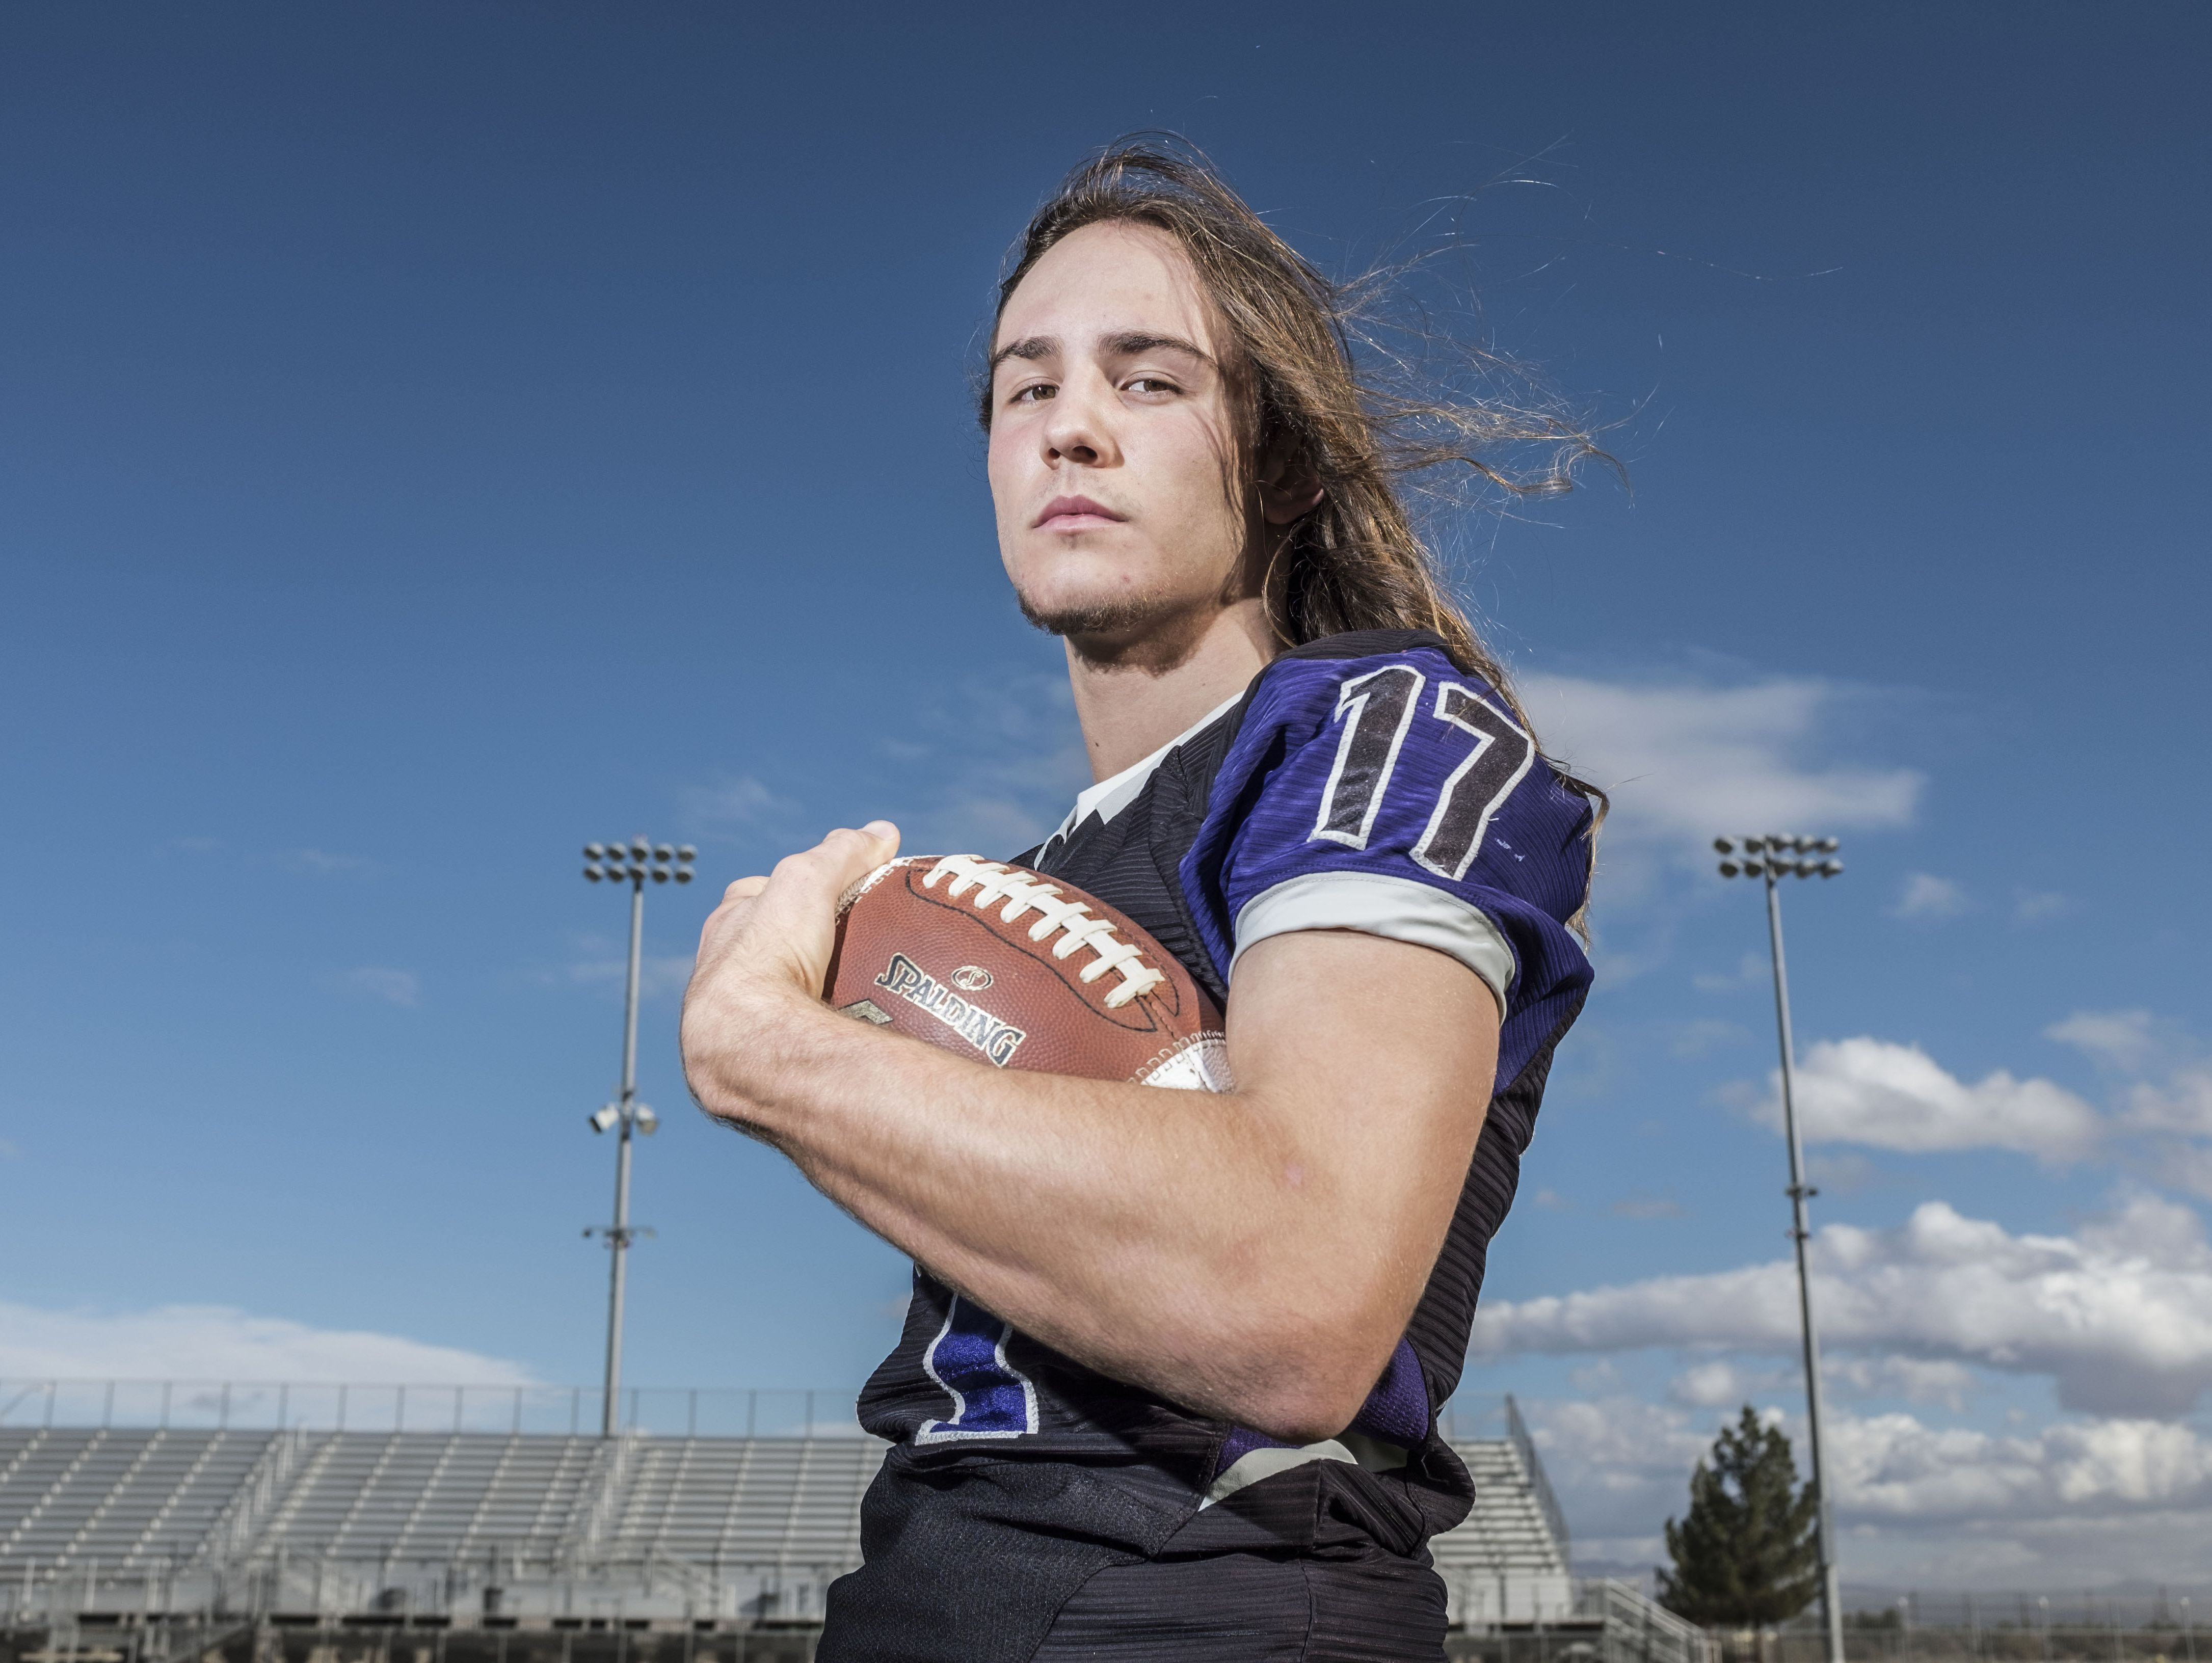 Knights football player JD Lang at Shadow Hills High School on Friday, December 16, 2016 in Indio.